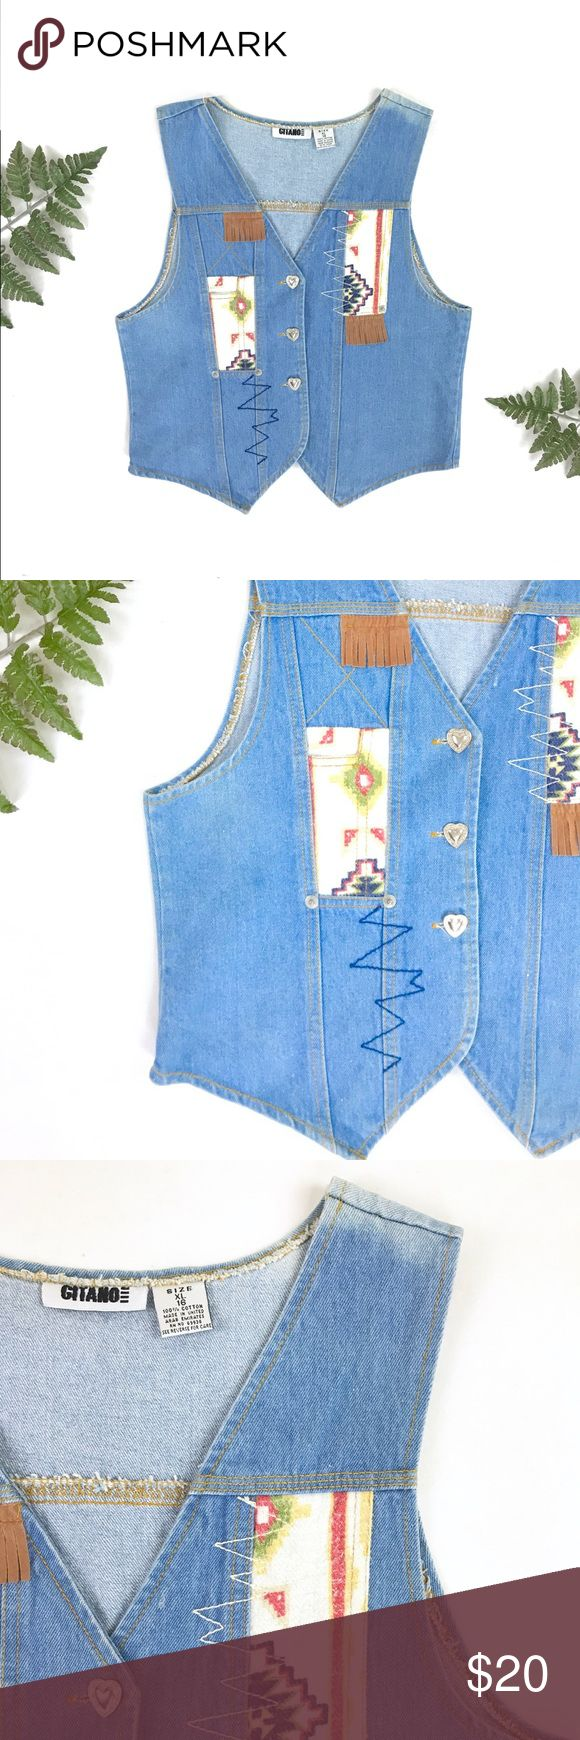 """90s does 70s southwestern style denim vest VTG sweet little 90s does 70s denim vest featuring light wash denim, flannel southwestern style patches and fringe, zig zag stitching, and three heart buttons. teens size 16 but can fit a women's S/M, see measurements. there is a faded spot on the left shoulder, otherwise like new vintage condition  LABEL: brand - Gitano size listed - 16 XL made in USA  MEASUREMENTS: laying flat 22"""" long 18"""" bust 10.25"""" arm opening Levi's Jackets & Coats Vests"""